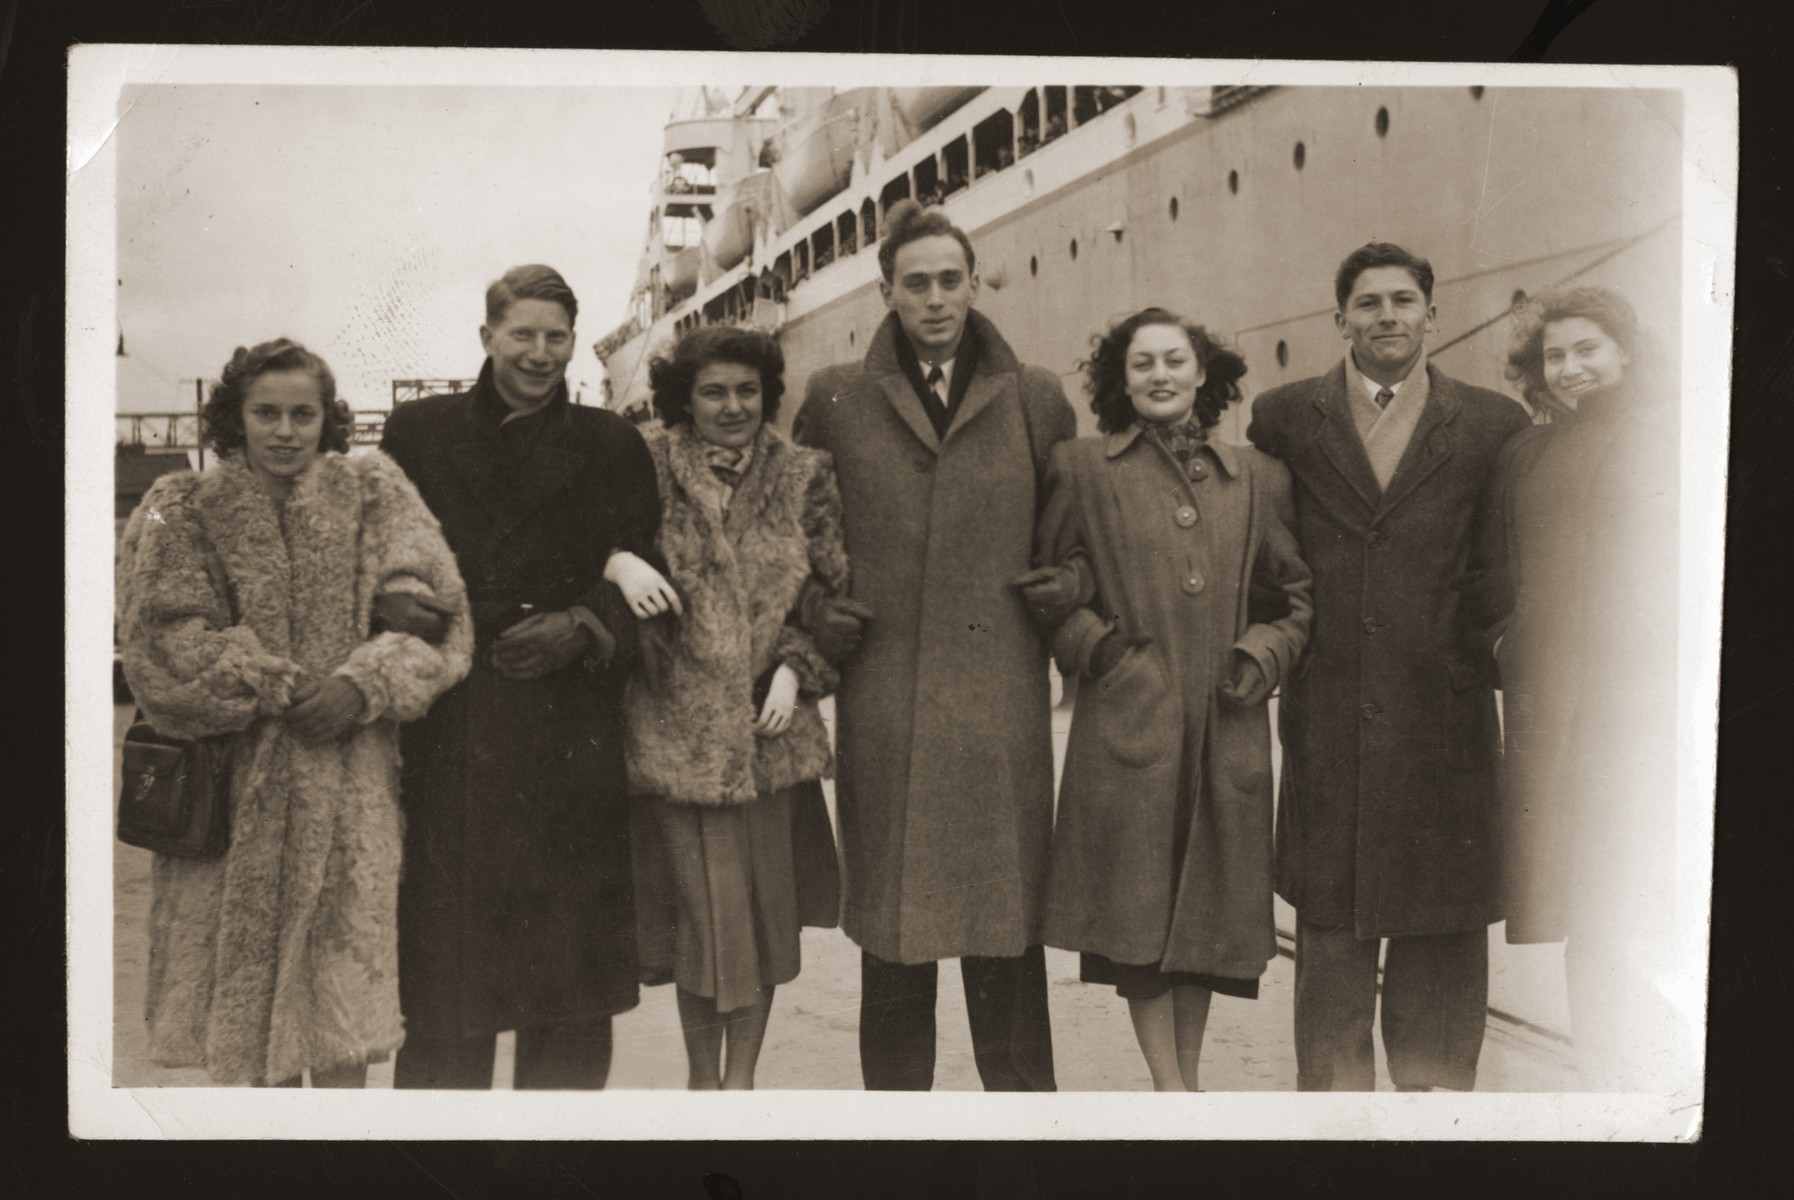 Jewish refugees arrive in San Francisco from Shanghai.  Pictured from left to right are: unknown; Ilie Wacs; Chaja Ambaras (Sugihara survivor); Henry Sattler, unknown; Horst Schlochauser and unknown.